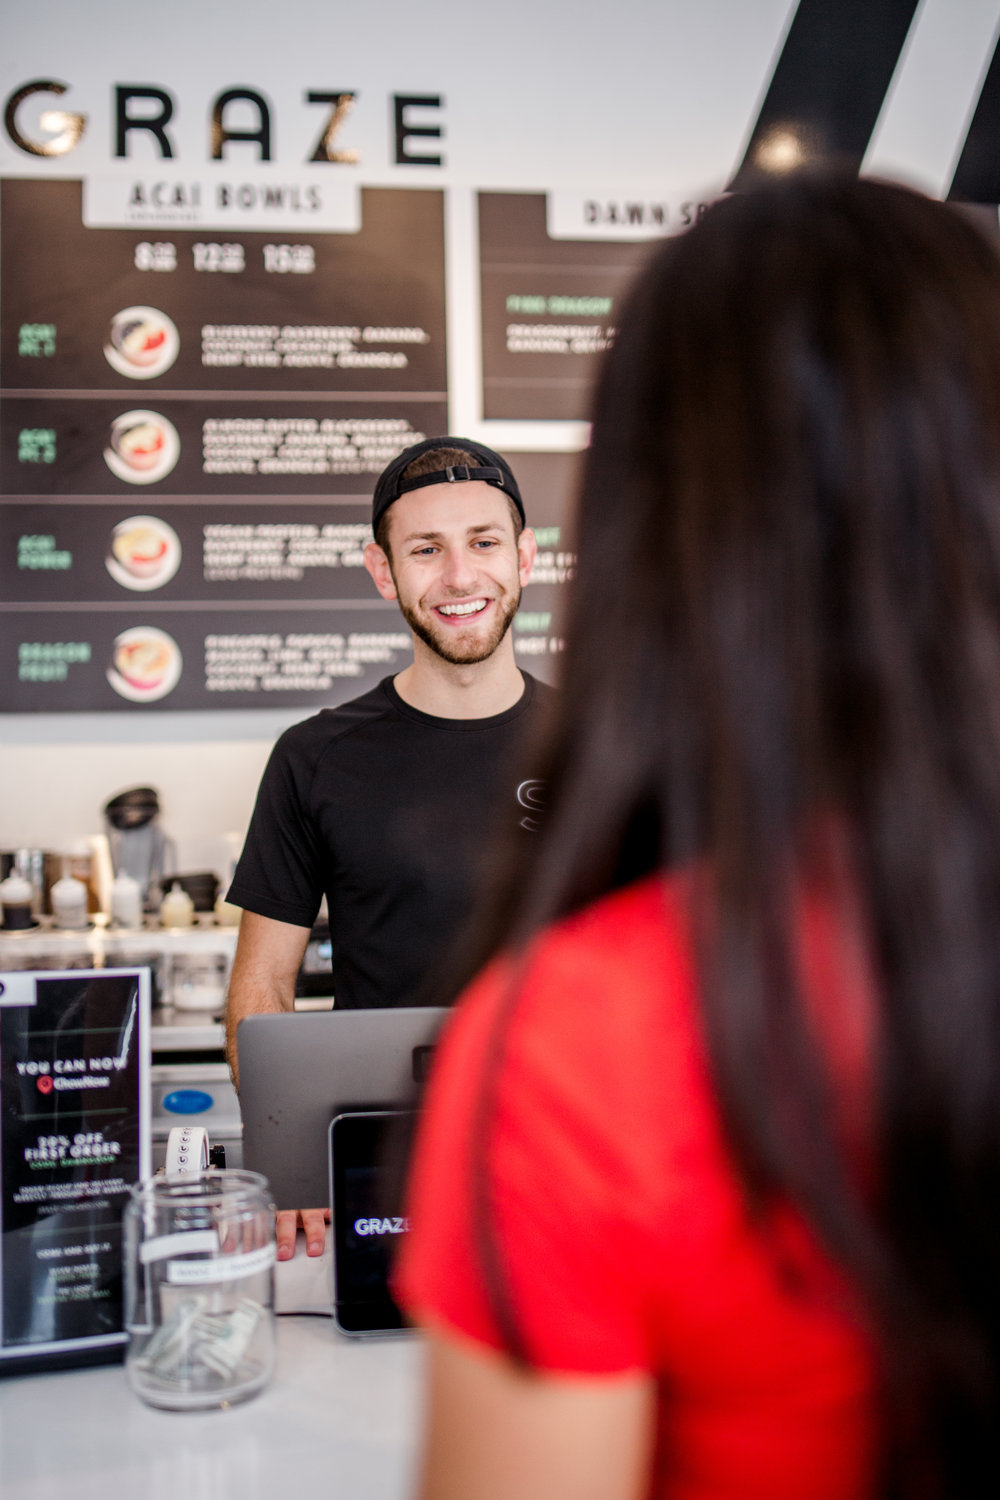 MEET MASON - Mason Edelson grew up in Chicago's north suburbs, starting his restaurant career at eight years of age, cooking meals in his parent's kitchen. SINCE THEN, HE HAS WORKED IN SEVEN DIFFERENT RESTAURANTS AND holds a degree in Hospitality. MASON FUELS HIS PASSION FOR FOOD THROUGH the creation of graze's HEALTHful menu. AS AN AVID fitness LOVER, HE ASPIRES TO CULTIVATE AWARENESS OF BODY POSITIVITY THROUGH COMMUNITY CONNECTION AND #DAMNGOOD SUSTENANCE.